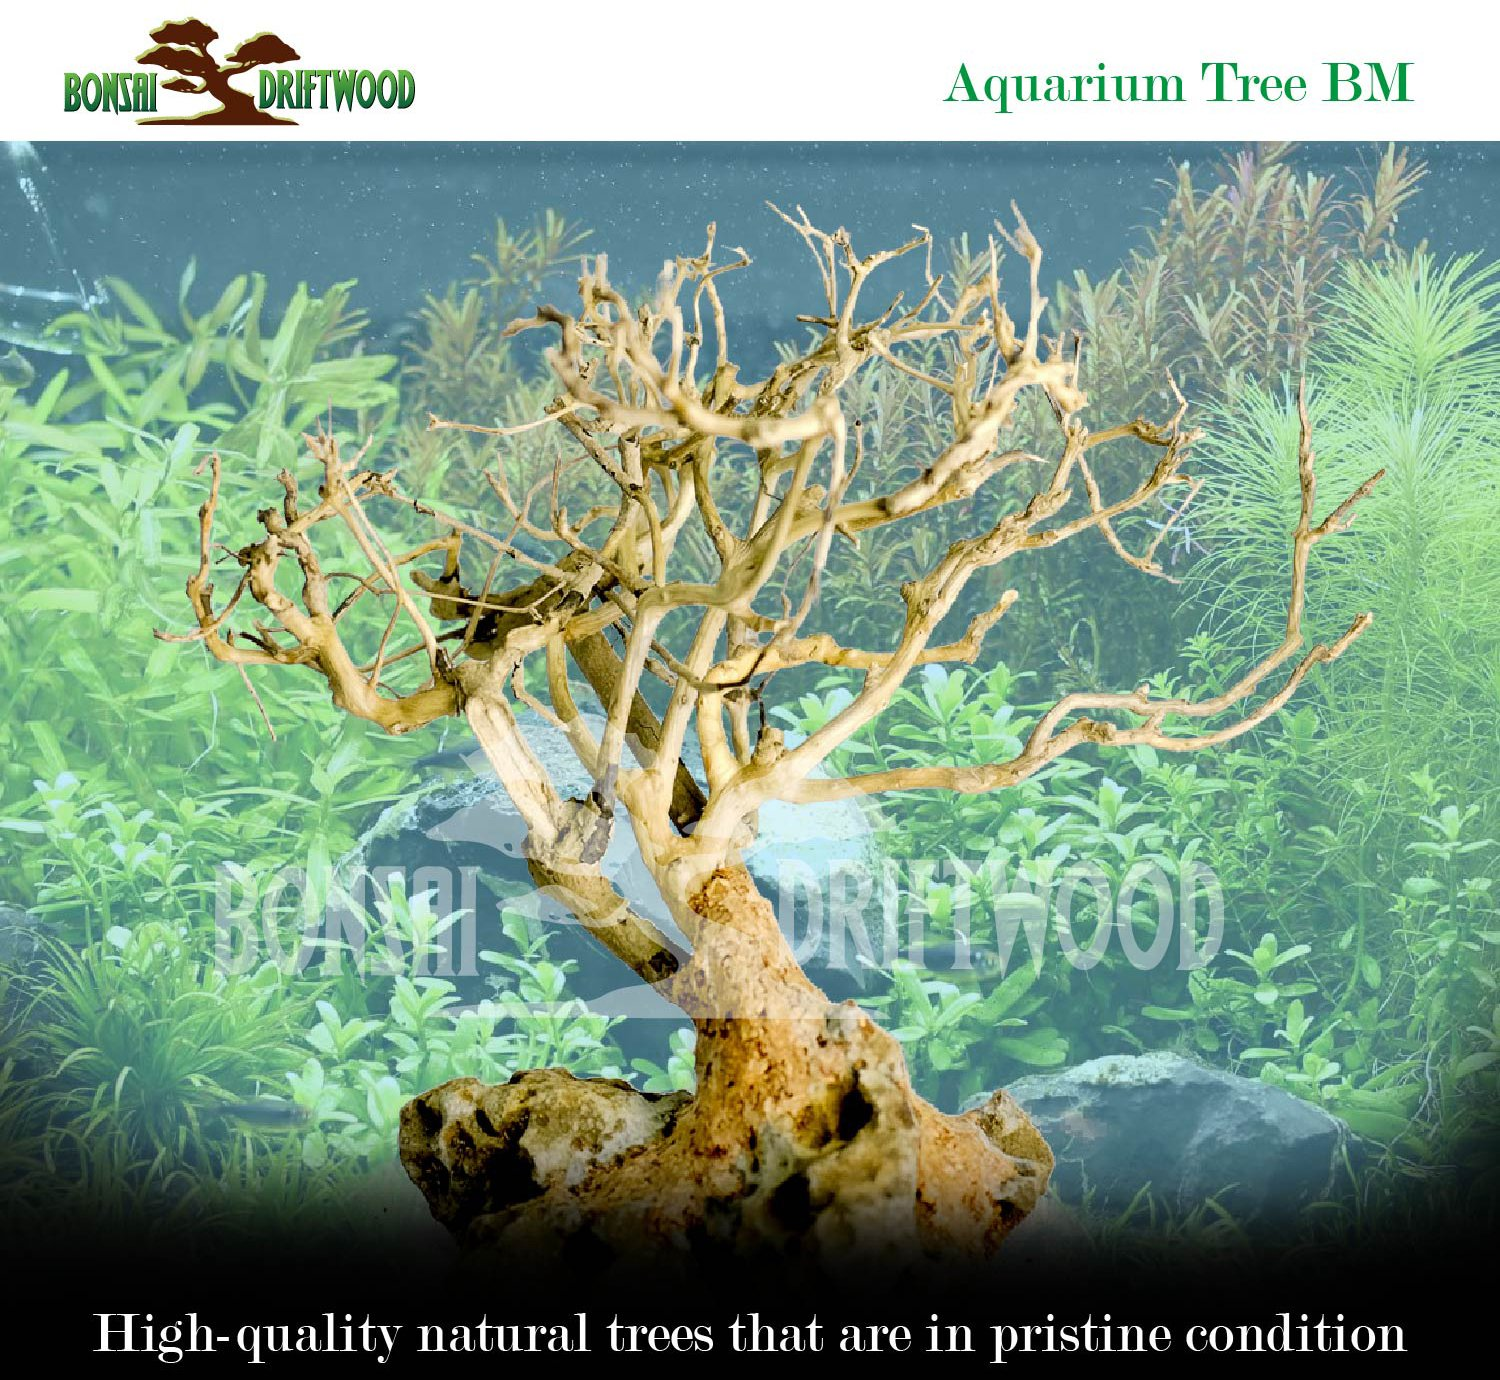 Bonsai Driftwood Aquarium Tree (5 Inch Height) Natural, Handcrafted Fish Tank Decoration | Helps Balance Water pH Levels, Stabilizes Environments | Easy to Install by Bonsai Driftwood (Image #6)